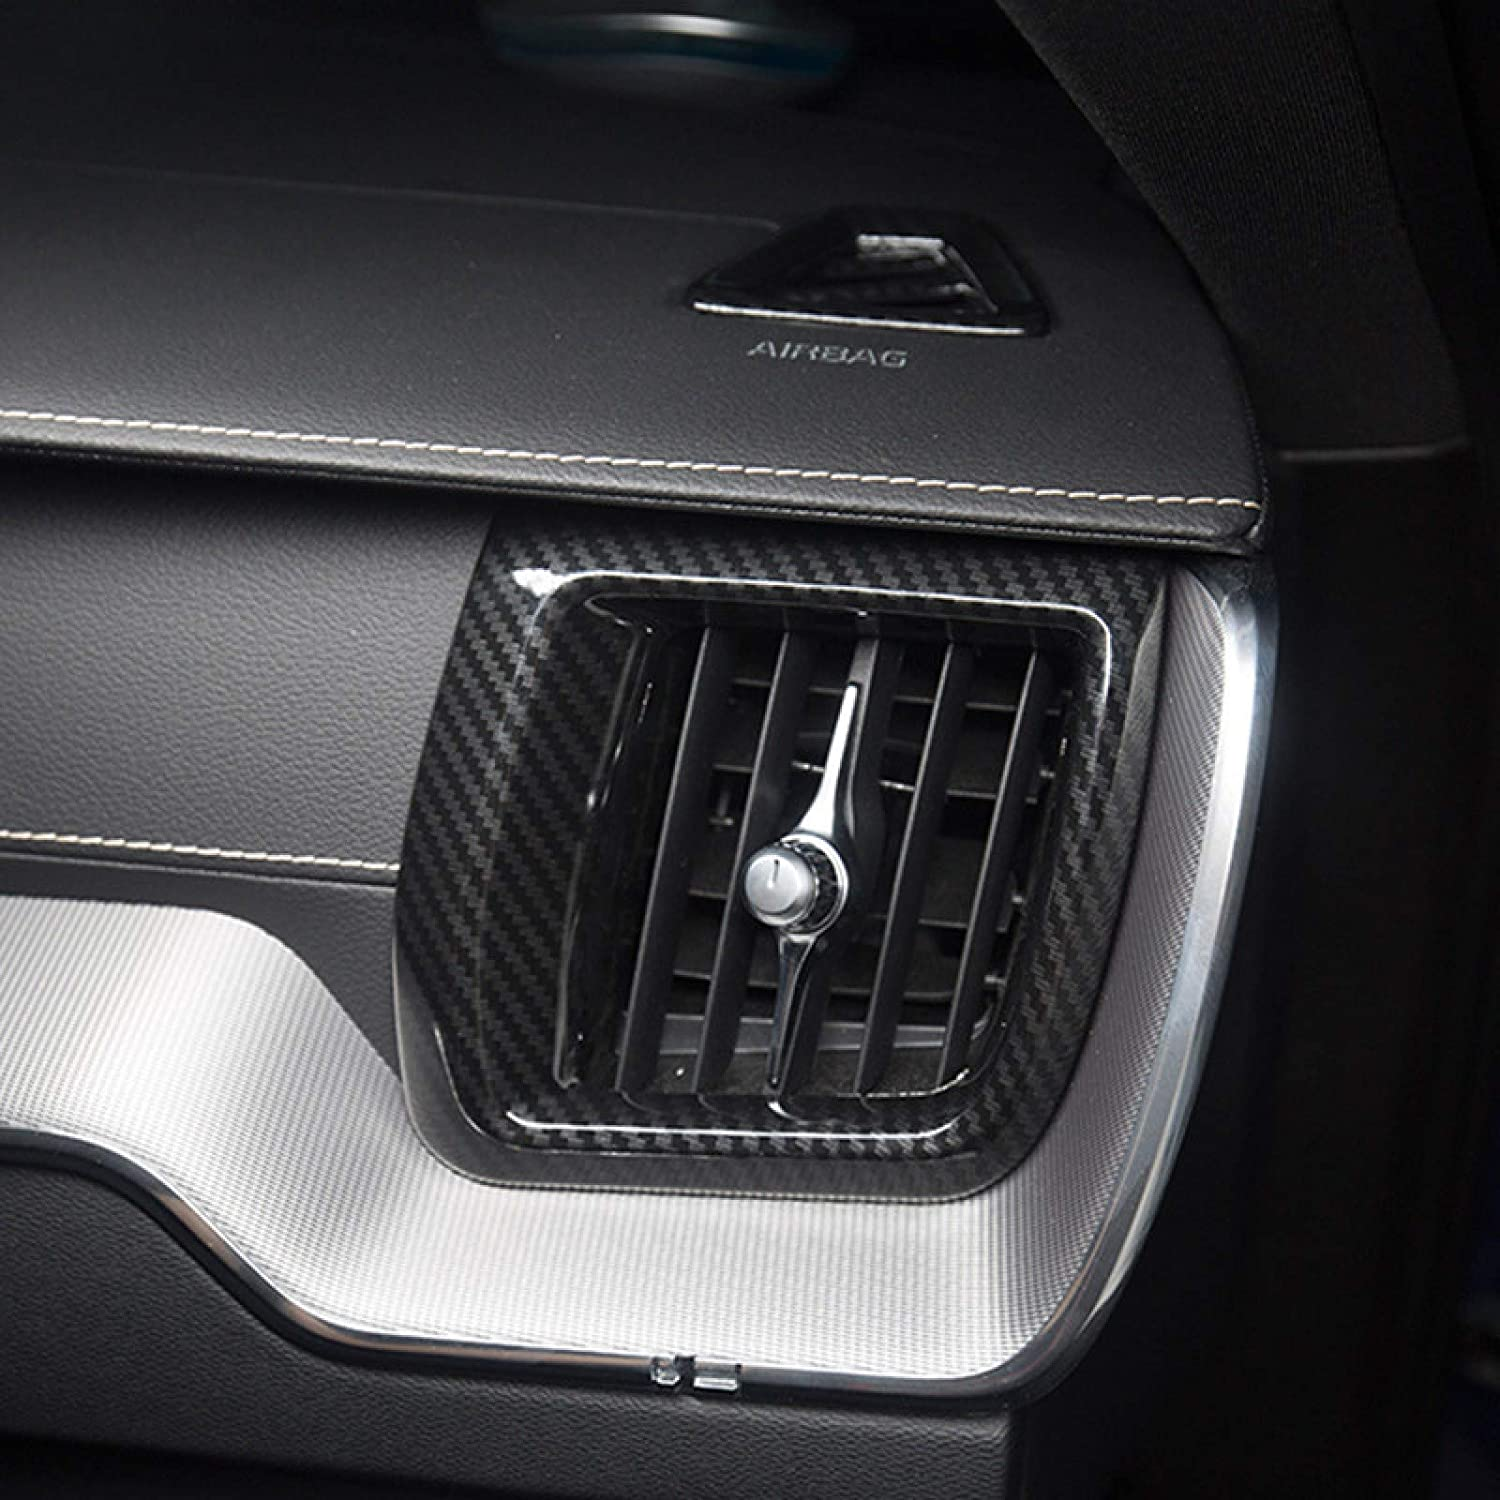 JIERS for Volvo Max 82% OFF XC60 2018 Carbon ABS Plastic Style free shipping Air Co Fiber